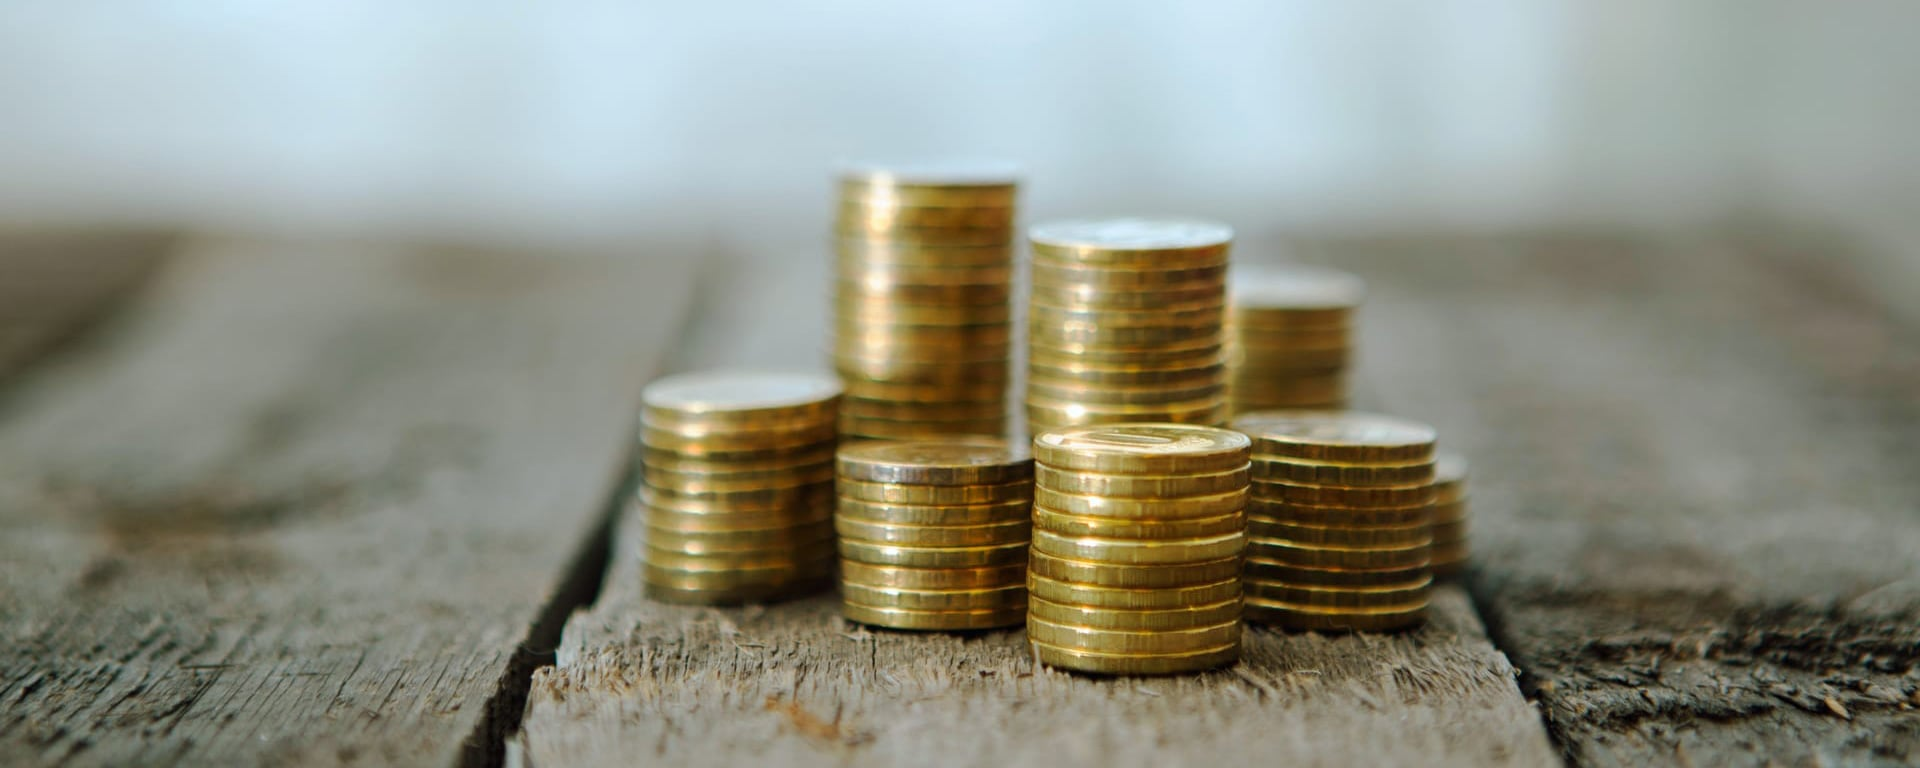 money pile: the value of business decisions